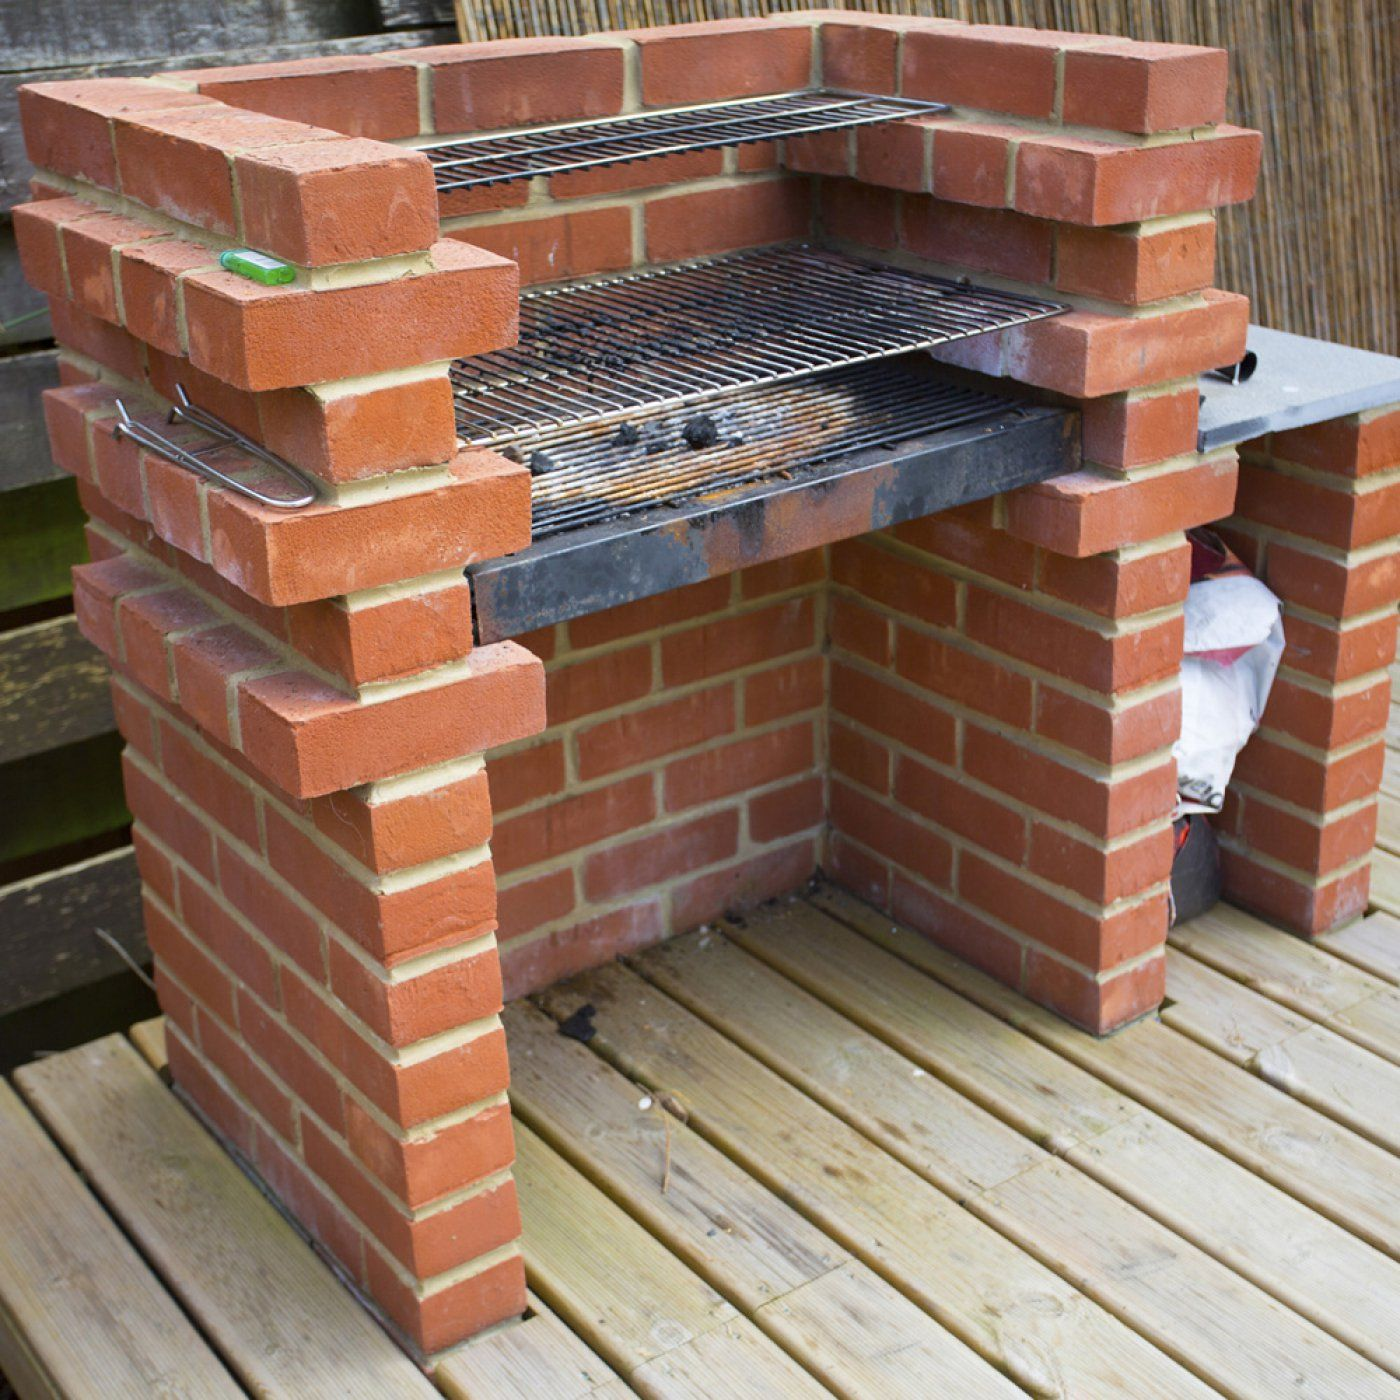 Comment construire un barbecue en brique barbecue en for Cheminee barbecue exterieur en brique